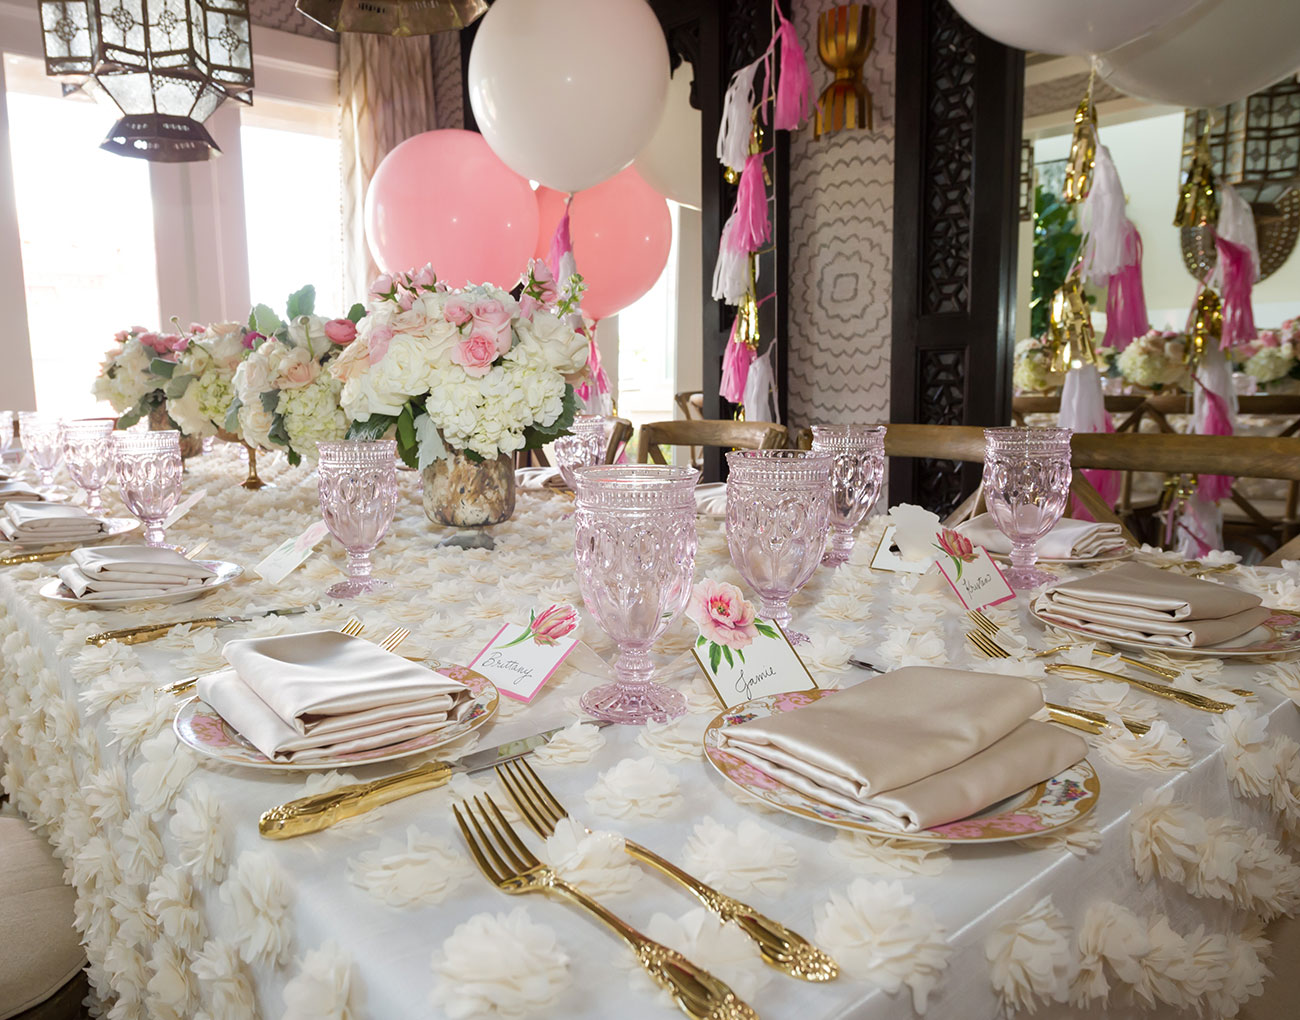 Event decorations around a table